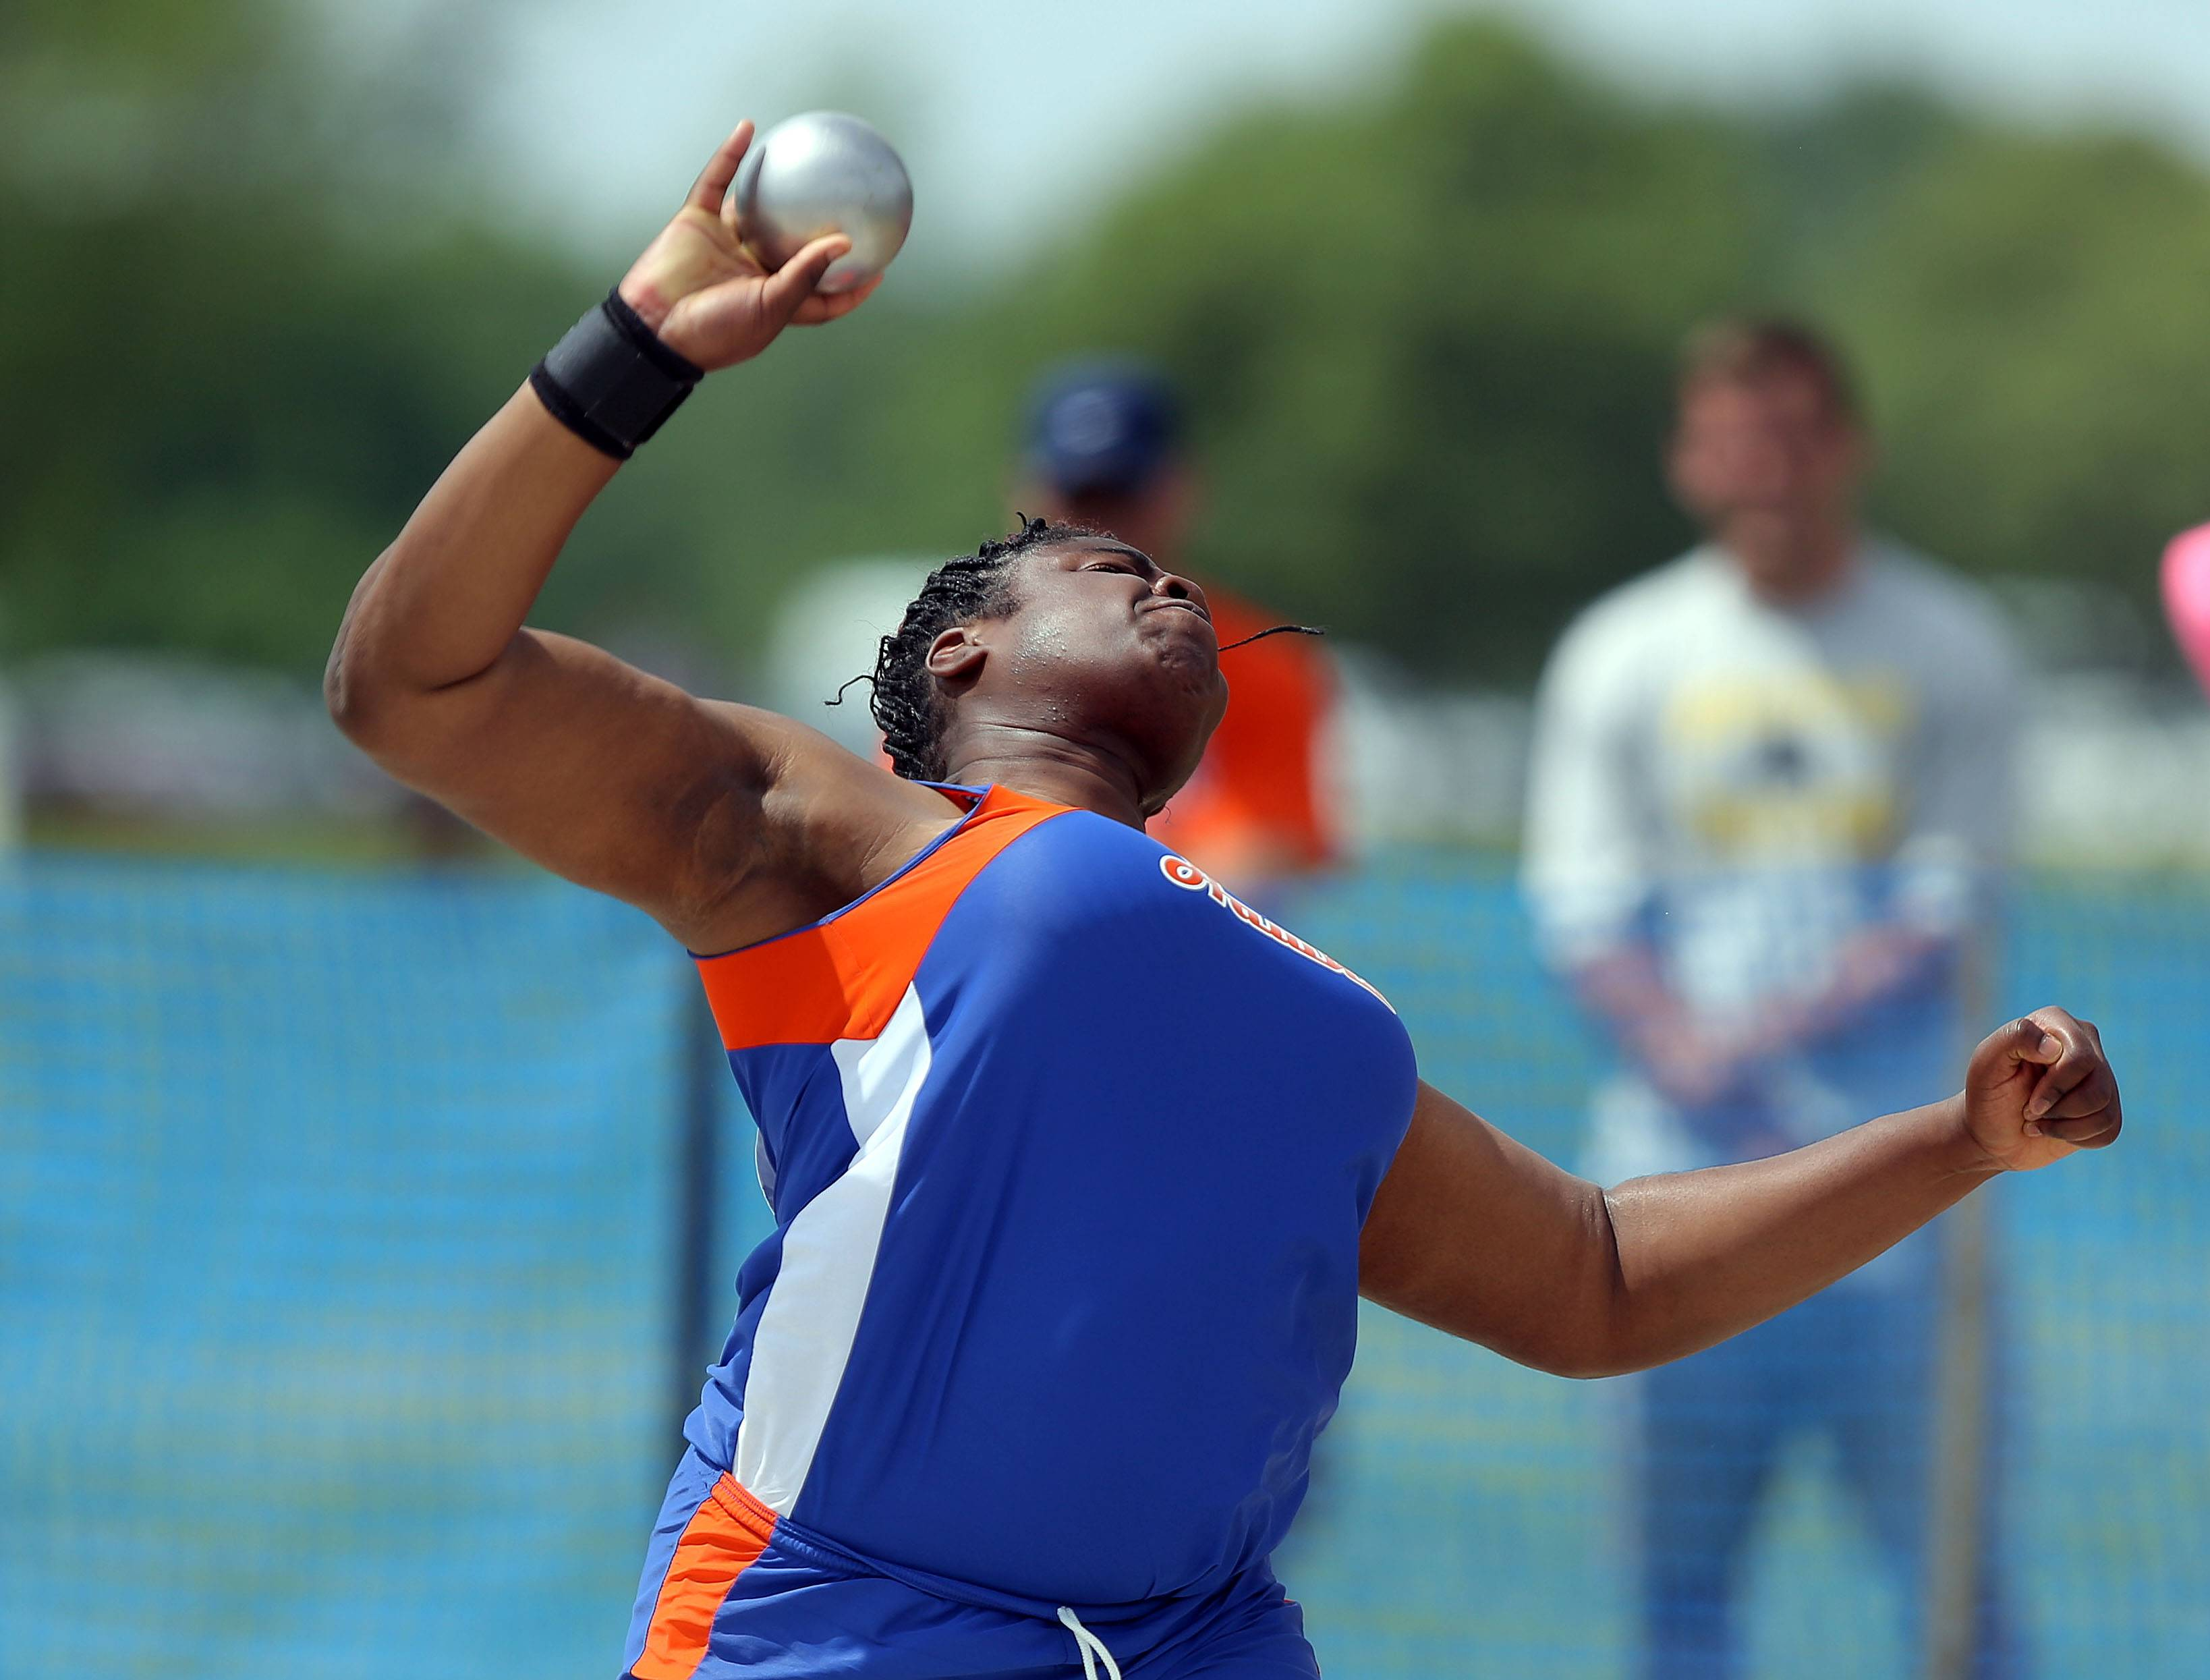 Hoffman Estates' Banke Oginni competes in the Class 3A shot put during the girls track and field state finals at Eastern Illinois University in Charleston on Saturday.